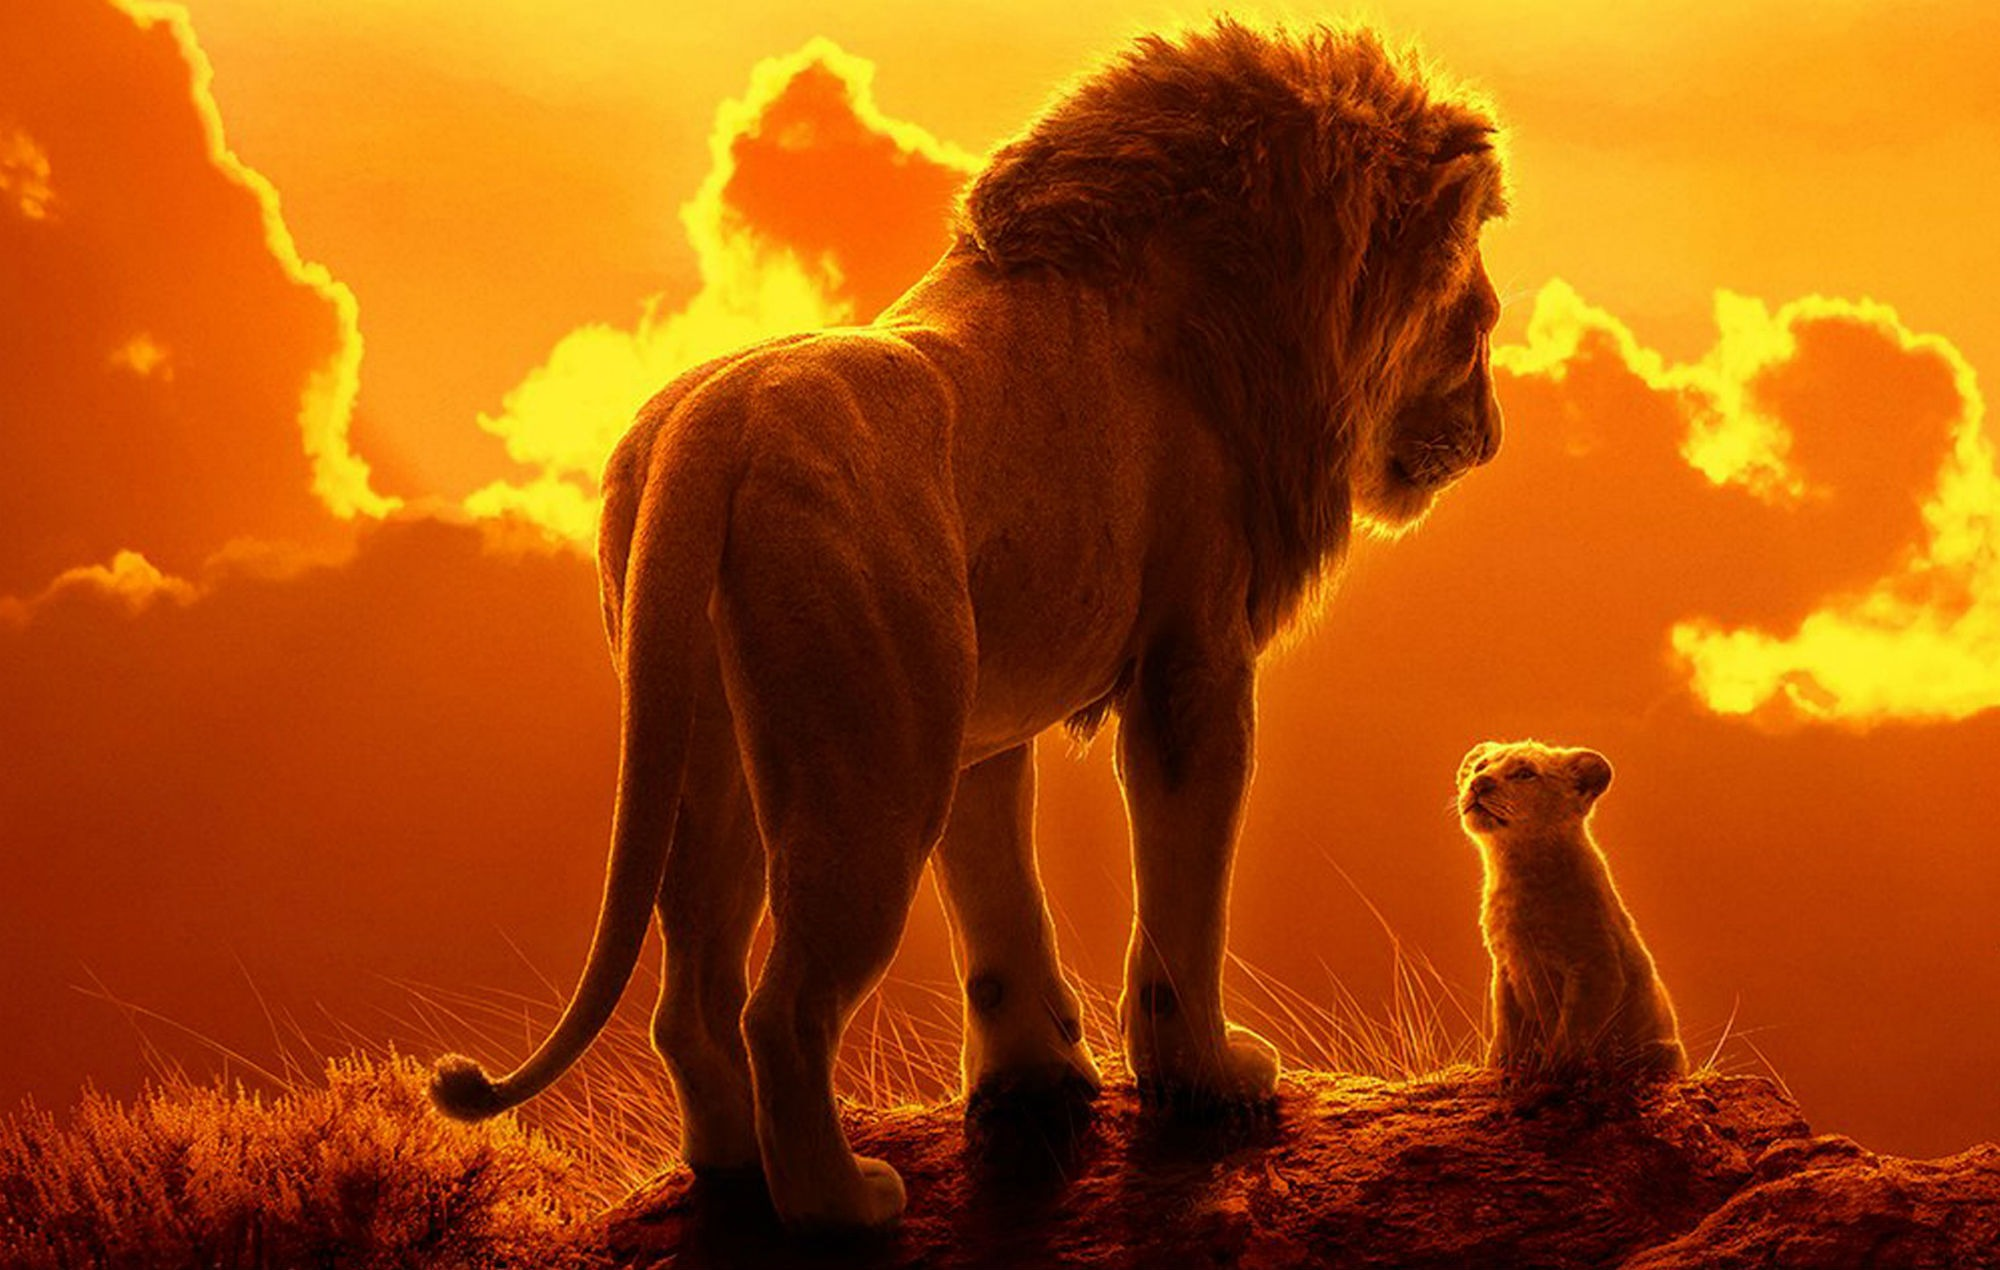 The Lion King (2019) Review: Is This Remake Of Classic Animated Film Worth Your Time?